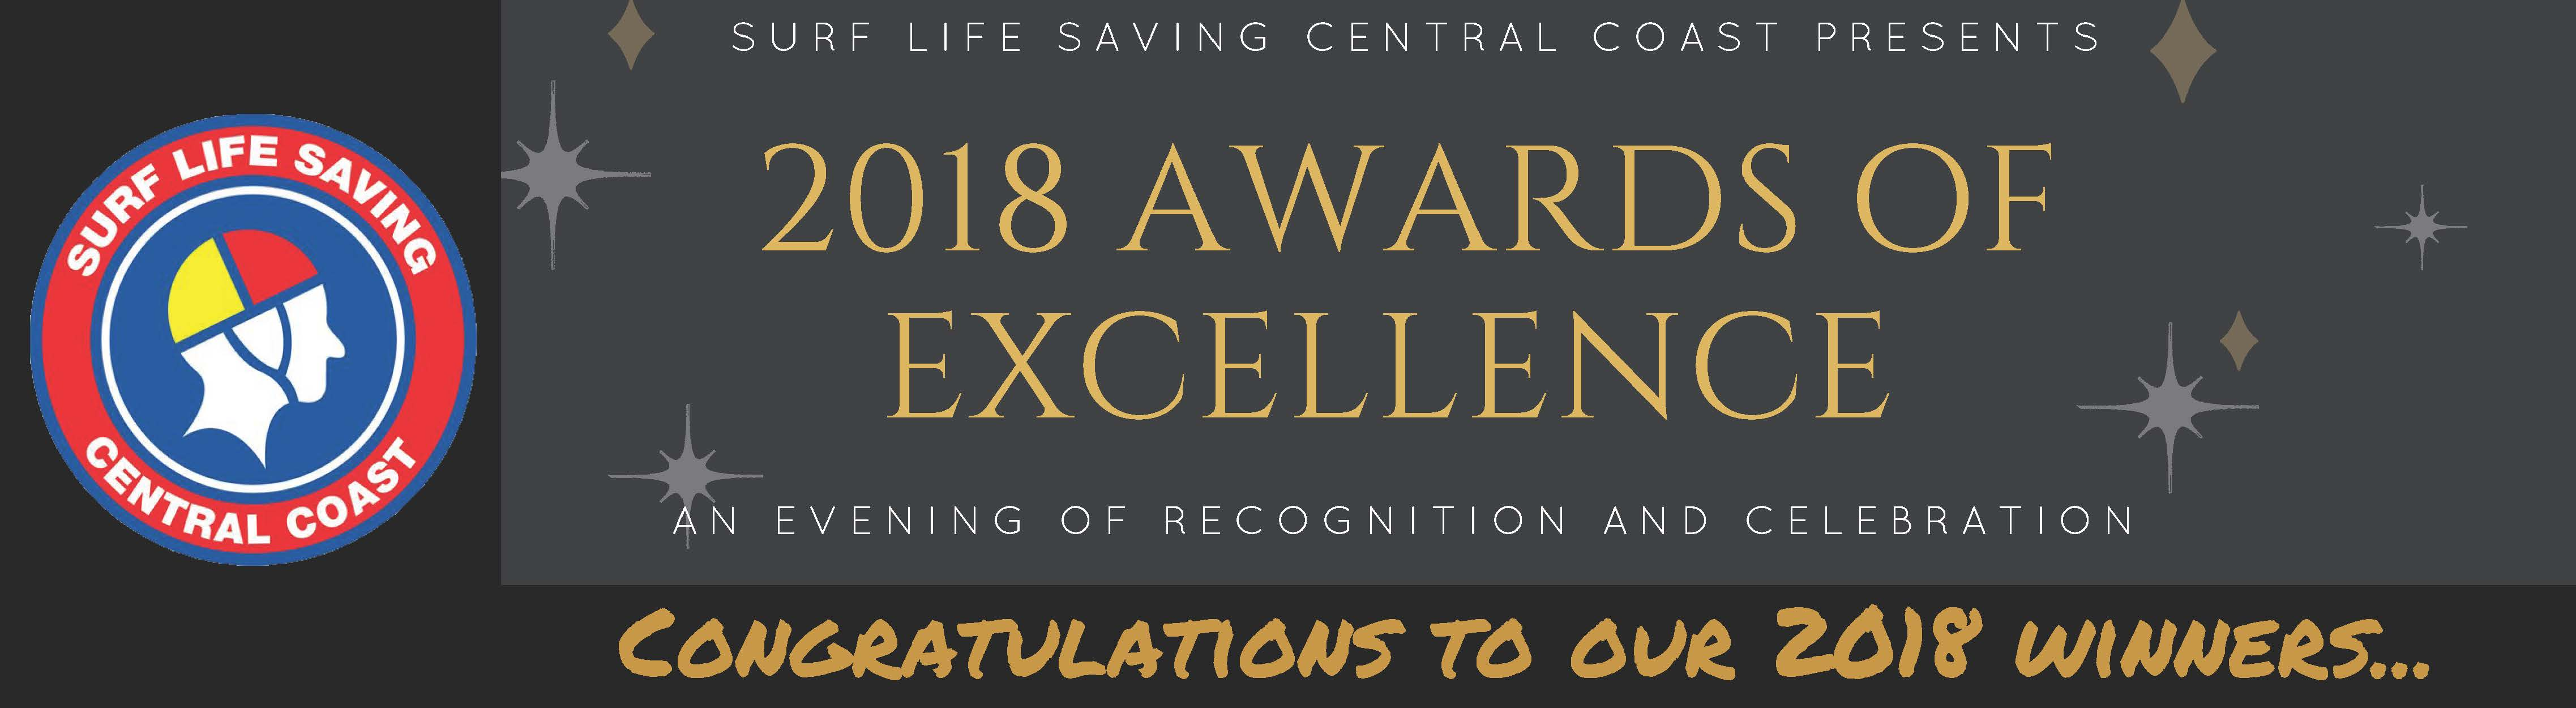 2018 Awards of Excellence Winners